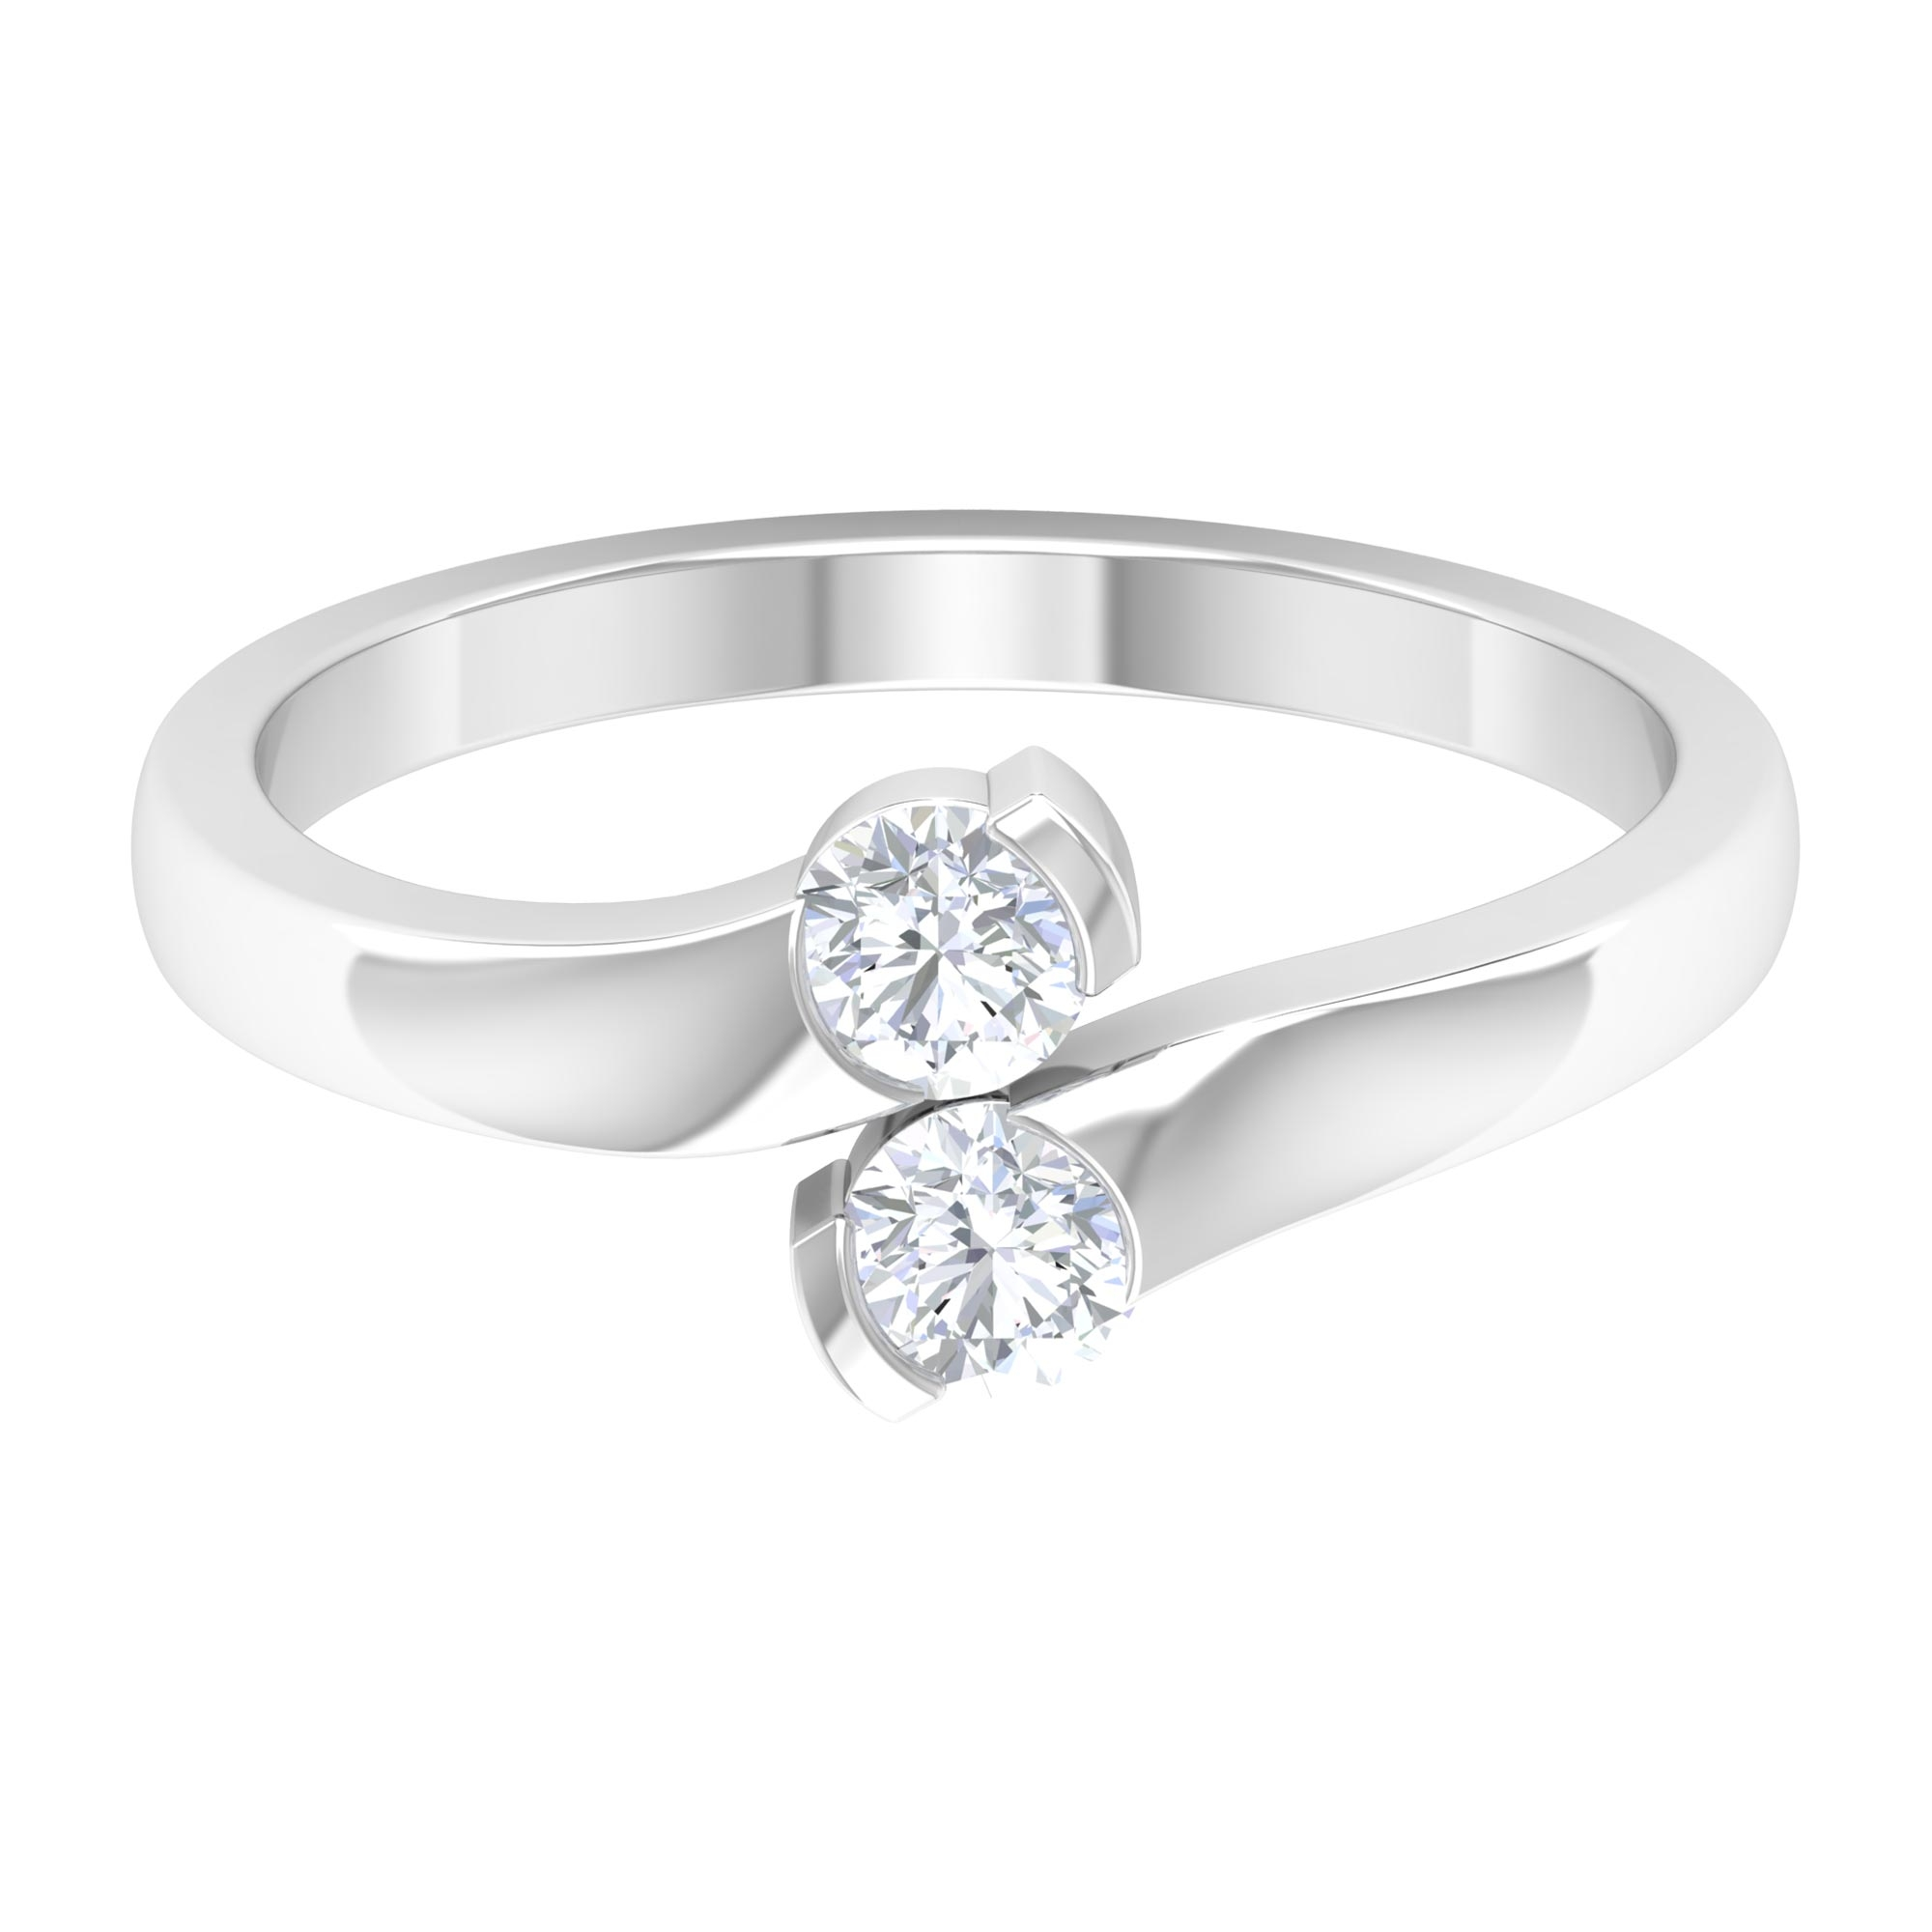 1/2 CT Round Cut Diamond Ring in Half Bezel Setting with Bypass Shank